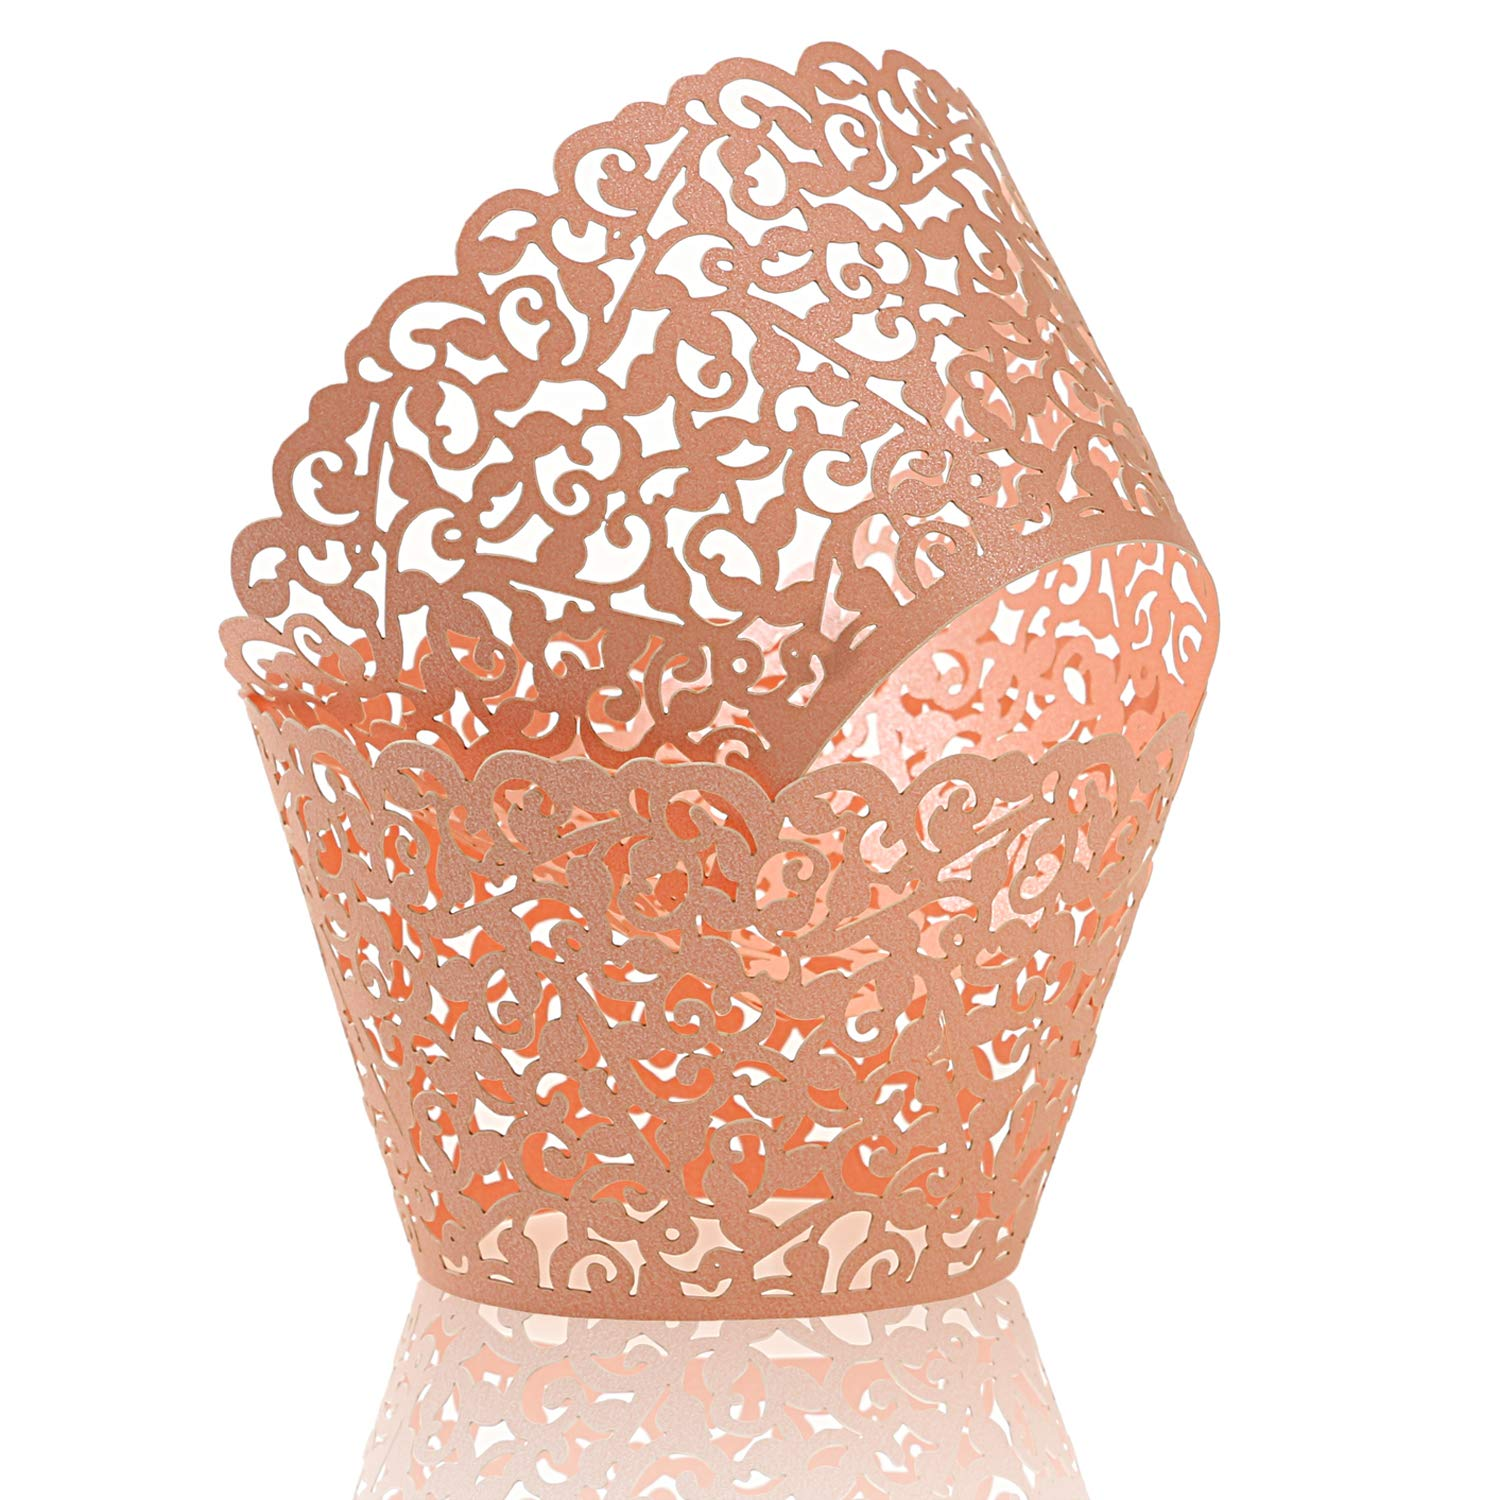 KPOSIYA Pack of 120 Cupcake Wrappers Artistic Bake Cake Paper Cups Vine Designed Laser Cut Cupcake Wraps Baking Cup Muffin Case Trays for Wedding Baby Shower Party Birthday Decoration (120, Pink)